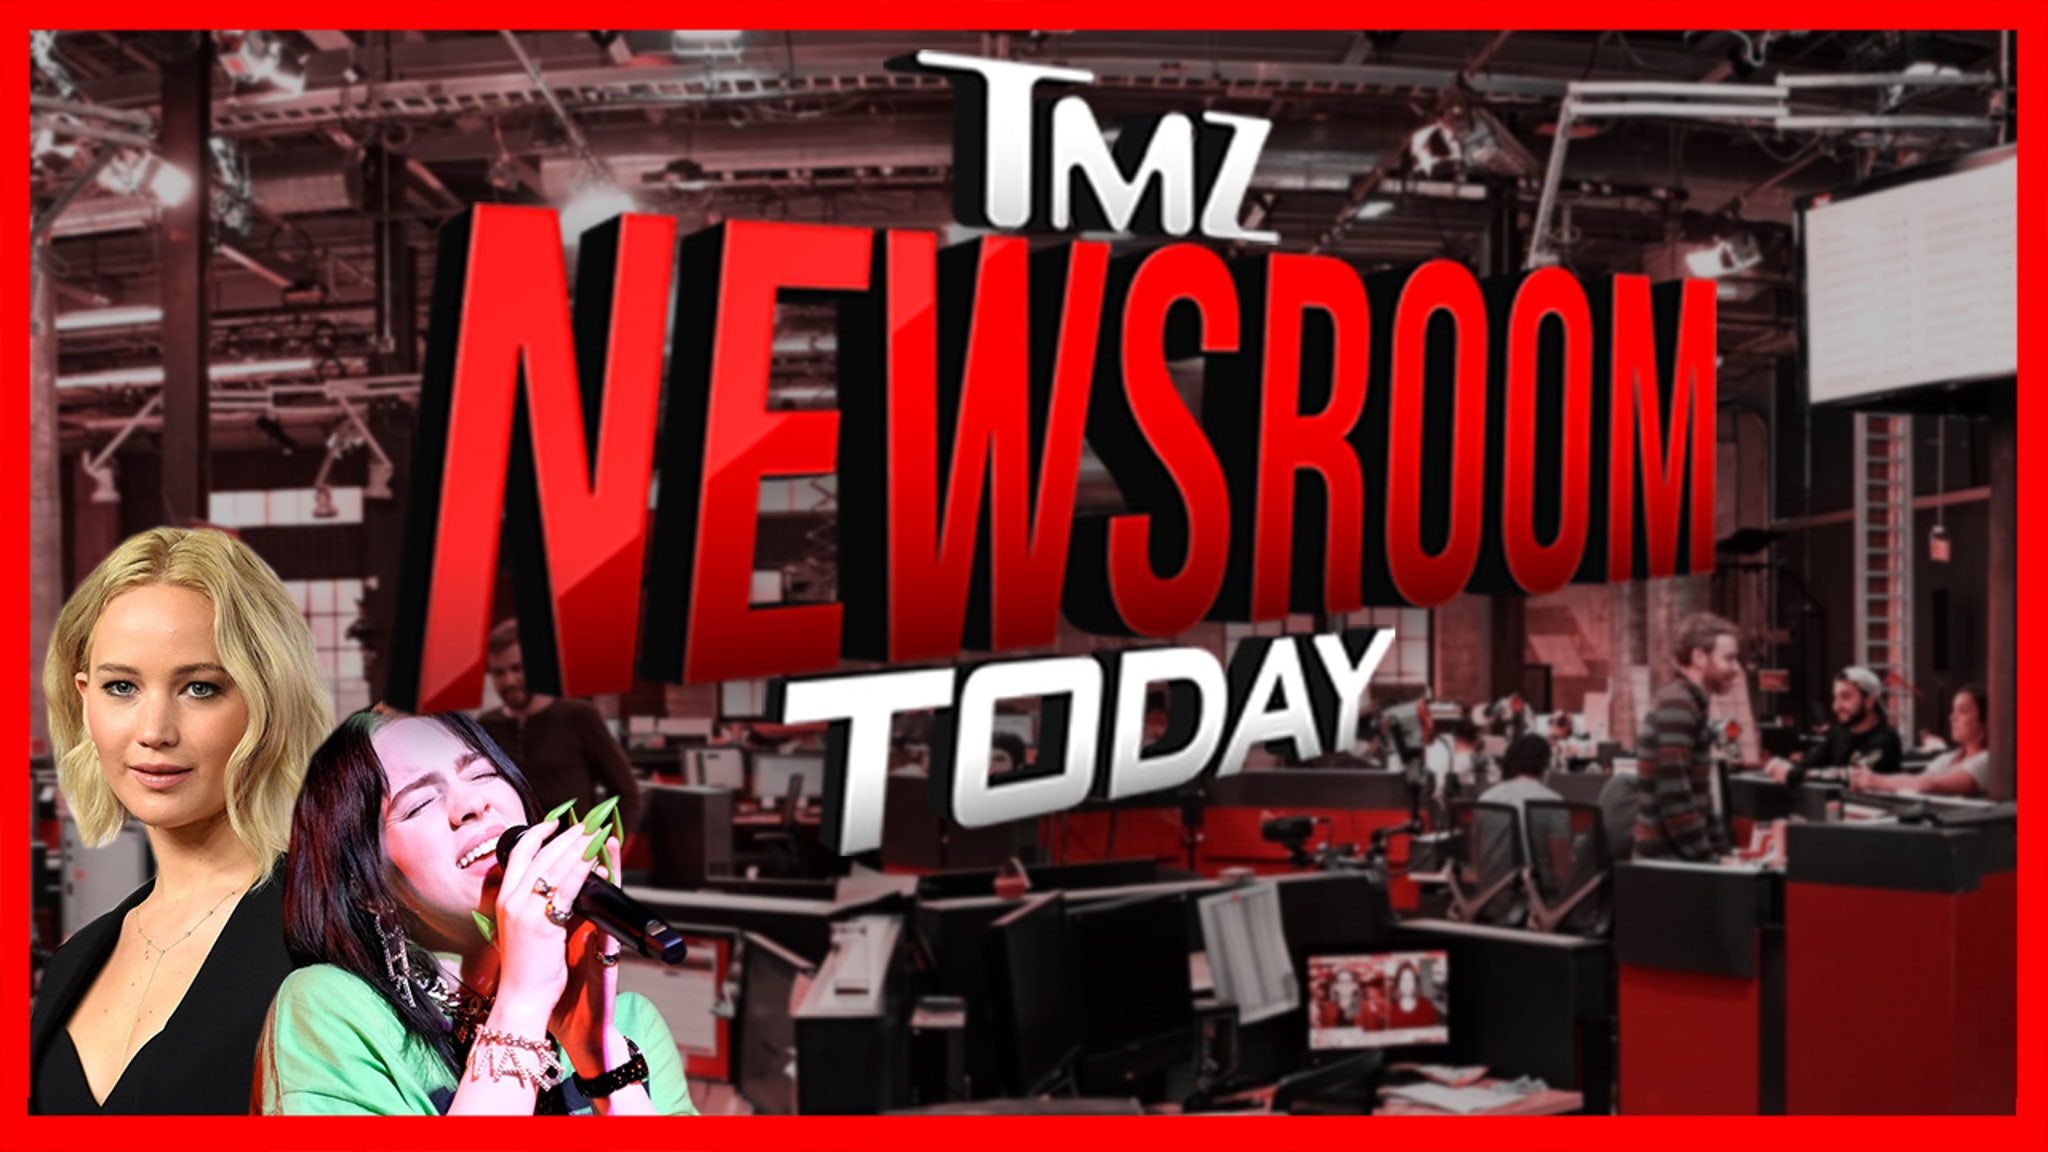 Jennifer Lawrence Getting Married This Weekend, Menu's Over the Top | TMZ NEWSROOM